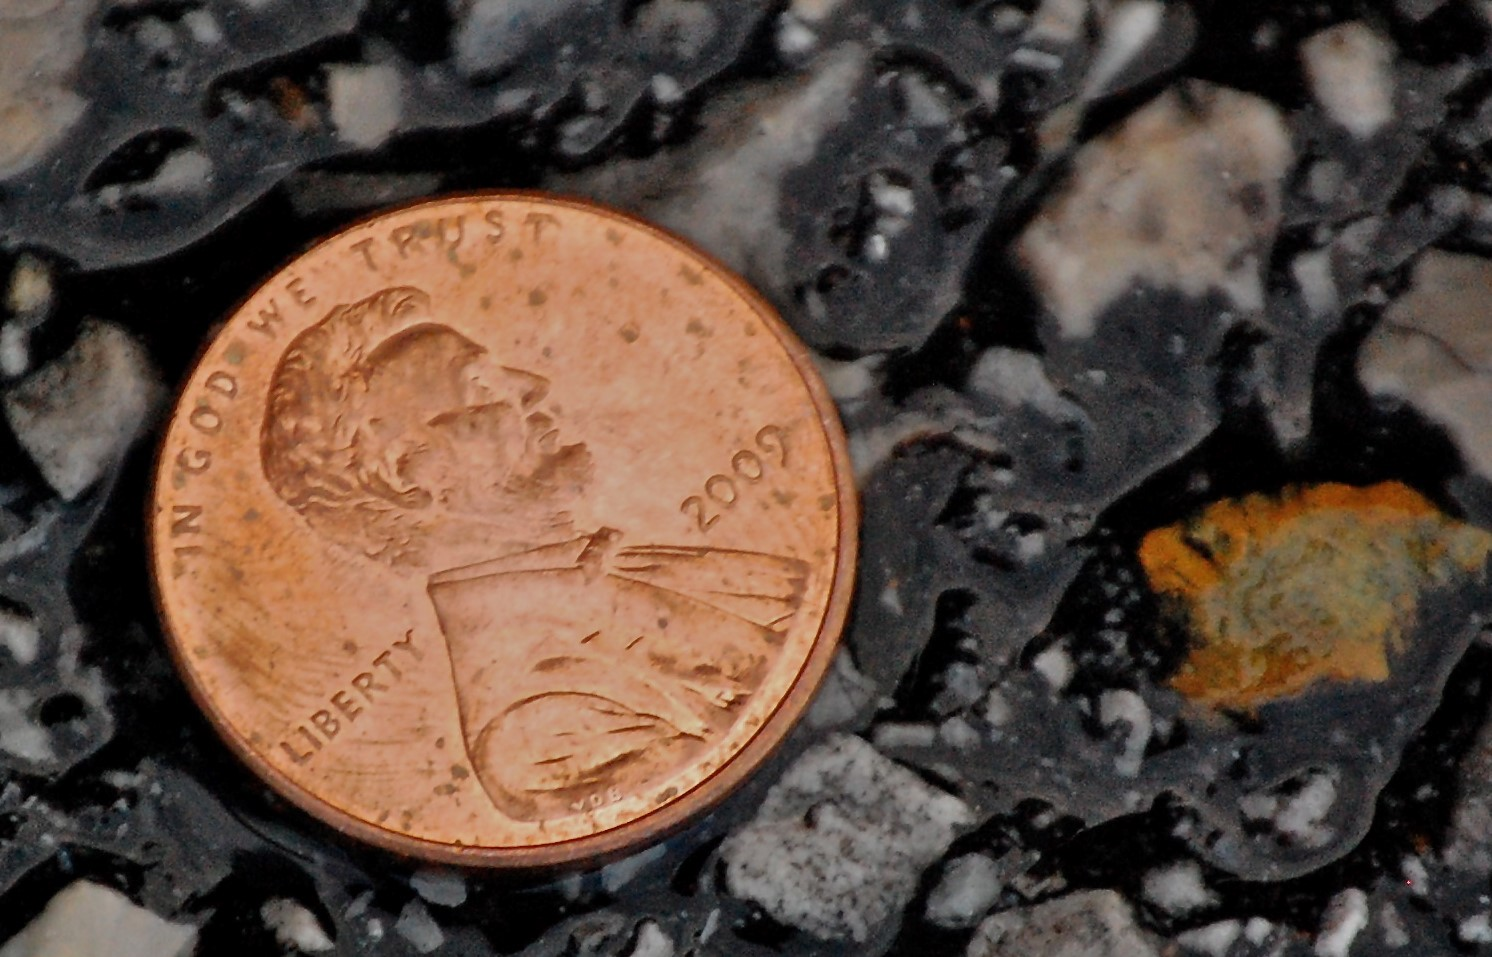 How Much Does It Cost To Make A Penny Today